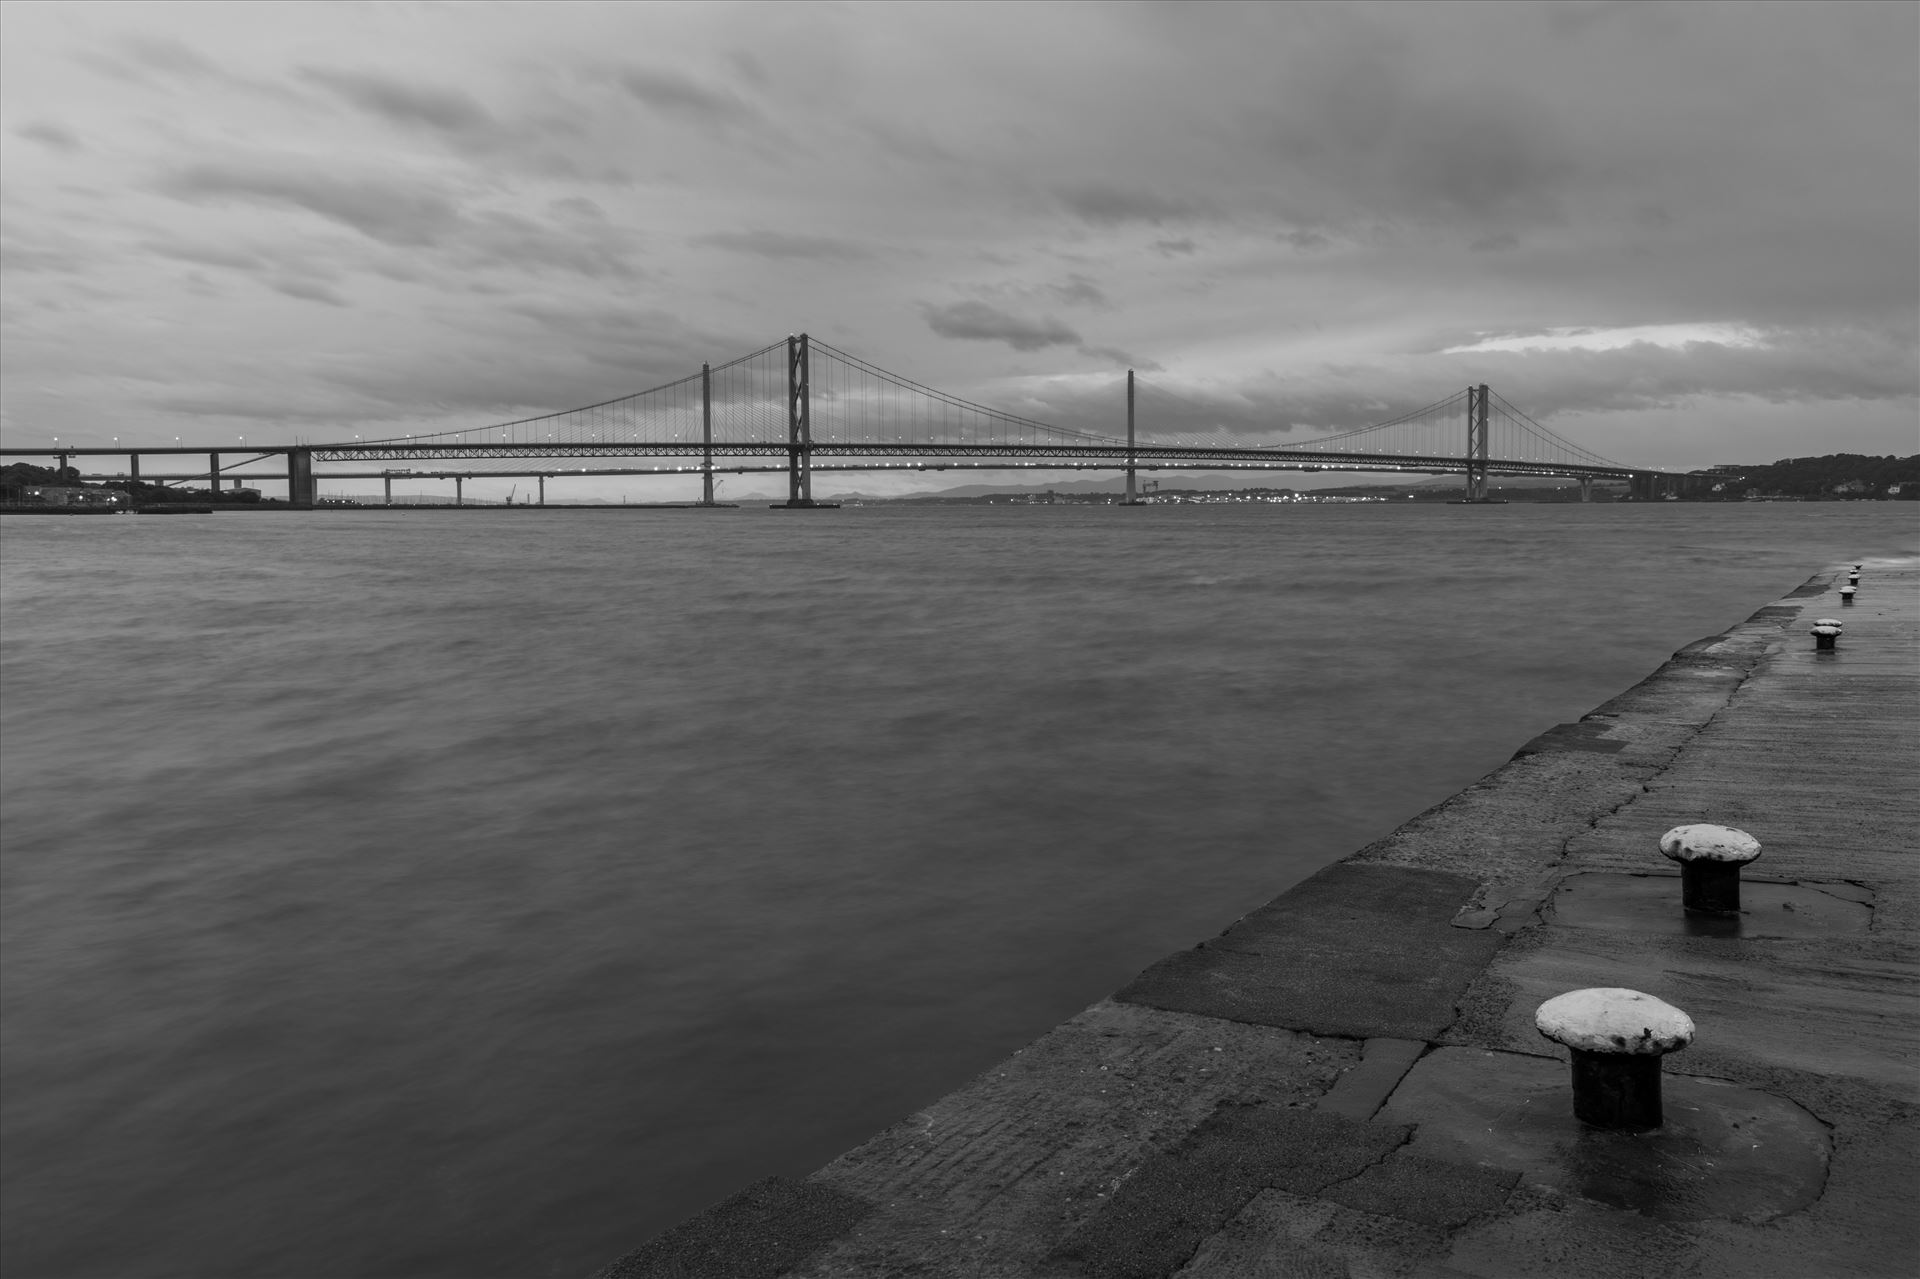 New & old Pictured here are the new & old road bridges across the Firth of Forth nr Edinburgh. by philreay